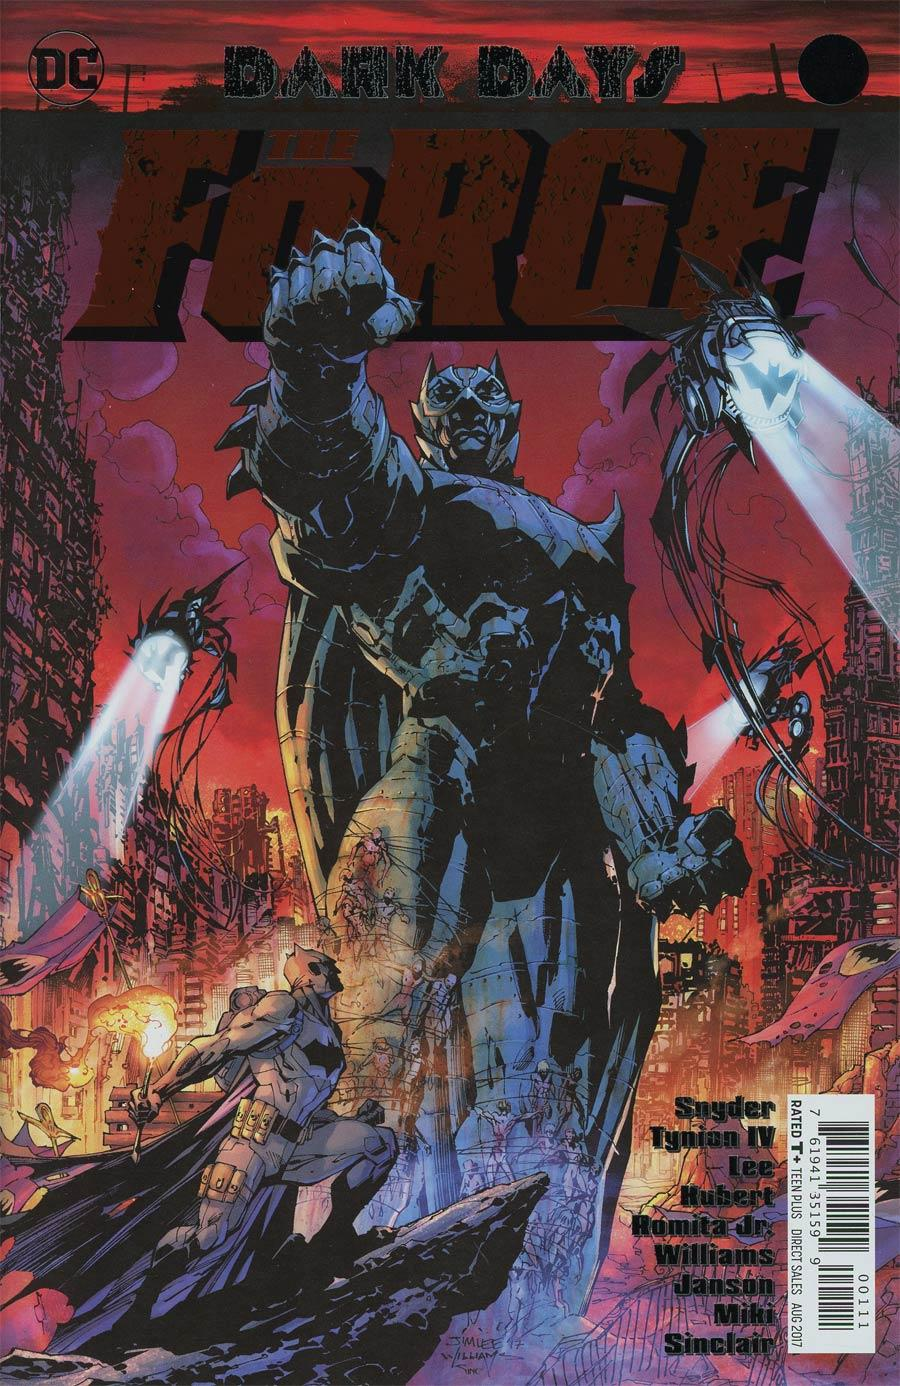 Dark Days The Forge Vol. 1 #1